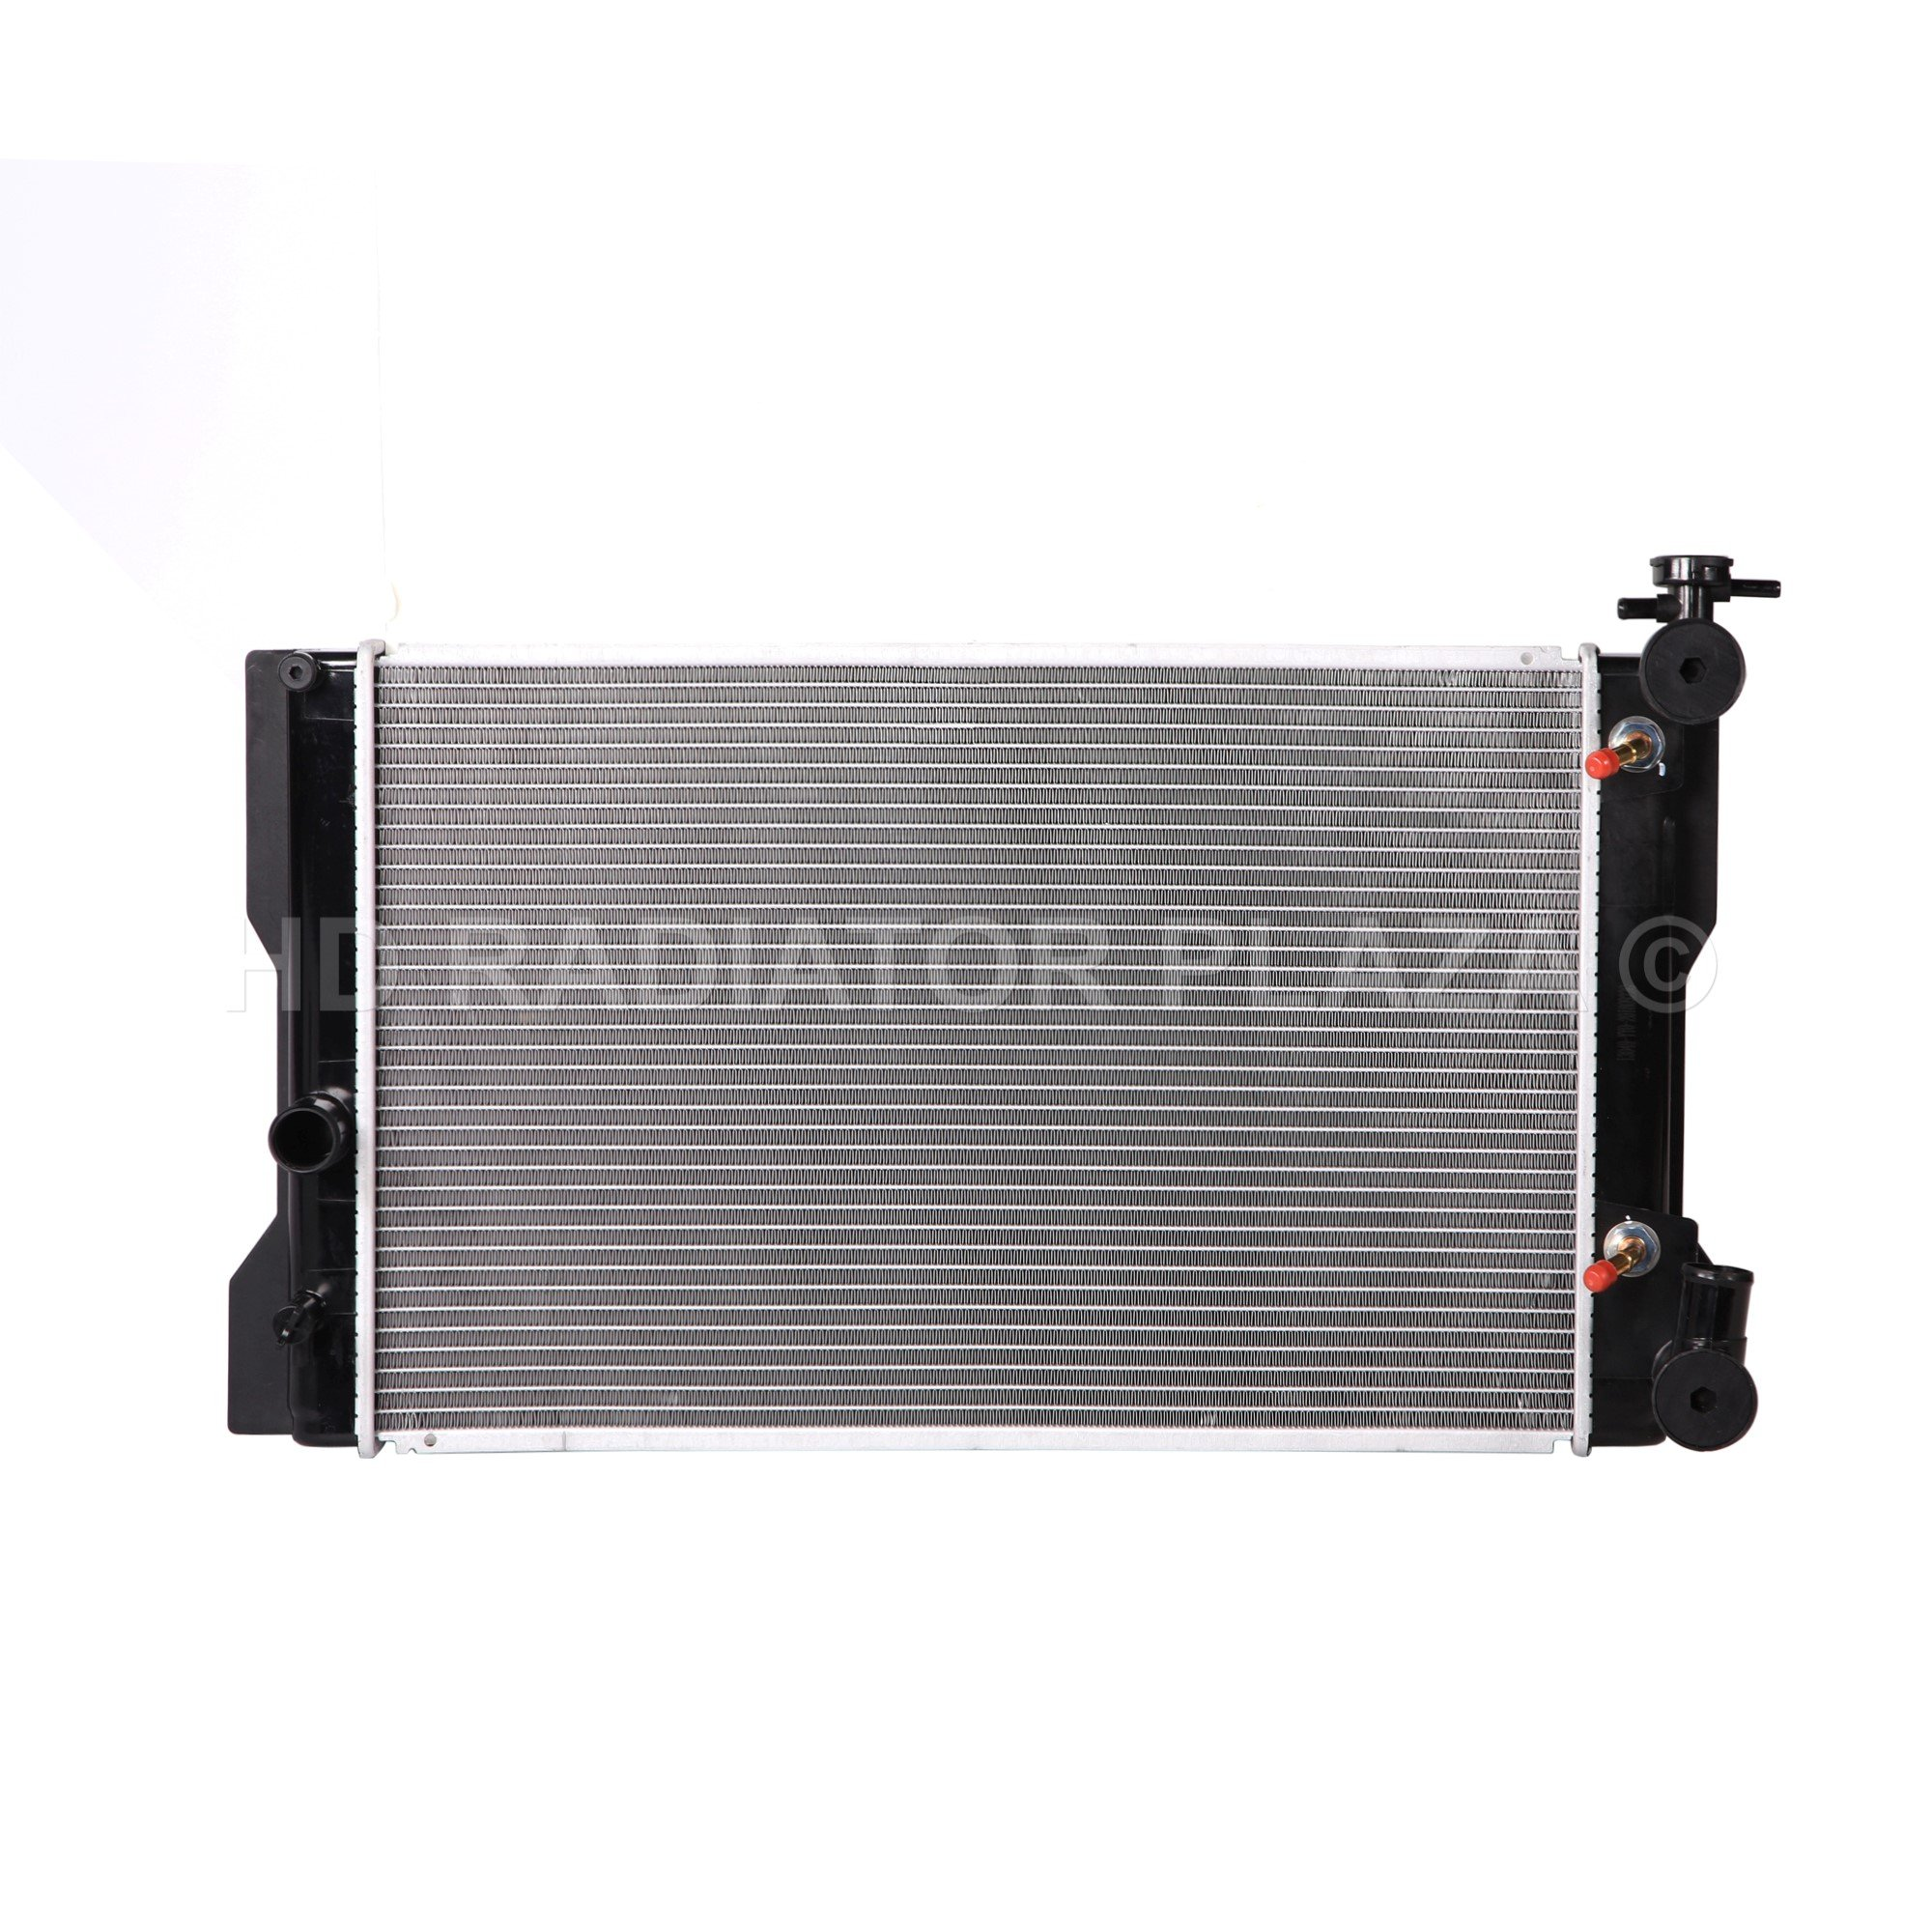 Radiator for 09-13 Toyota Matrix / Corolla / Vibe